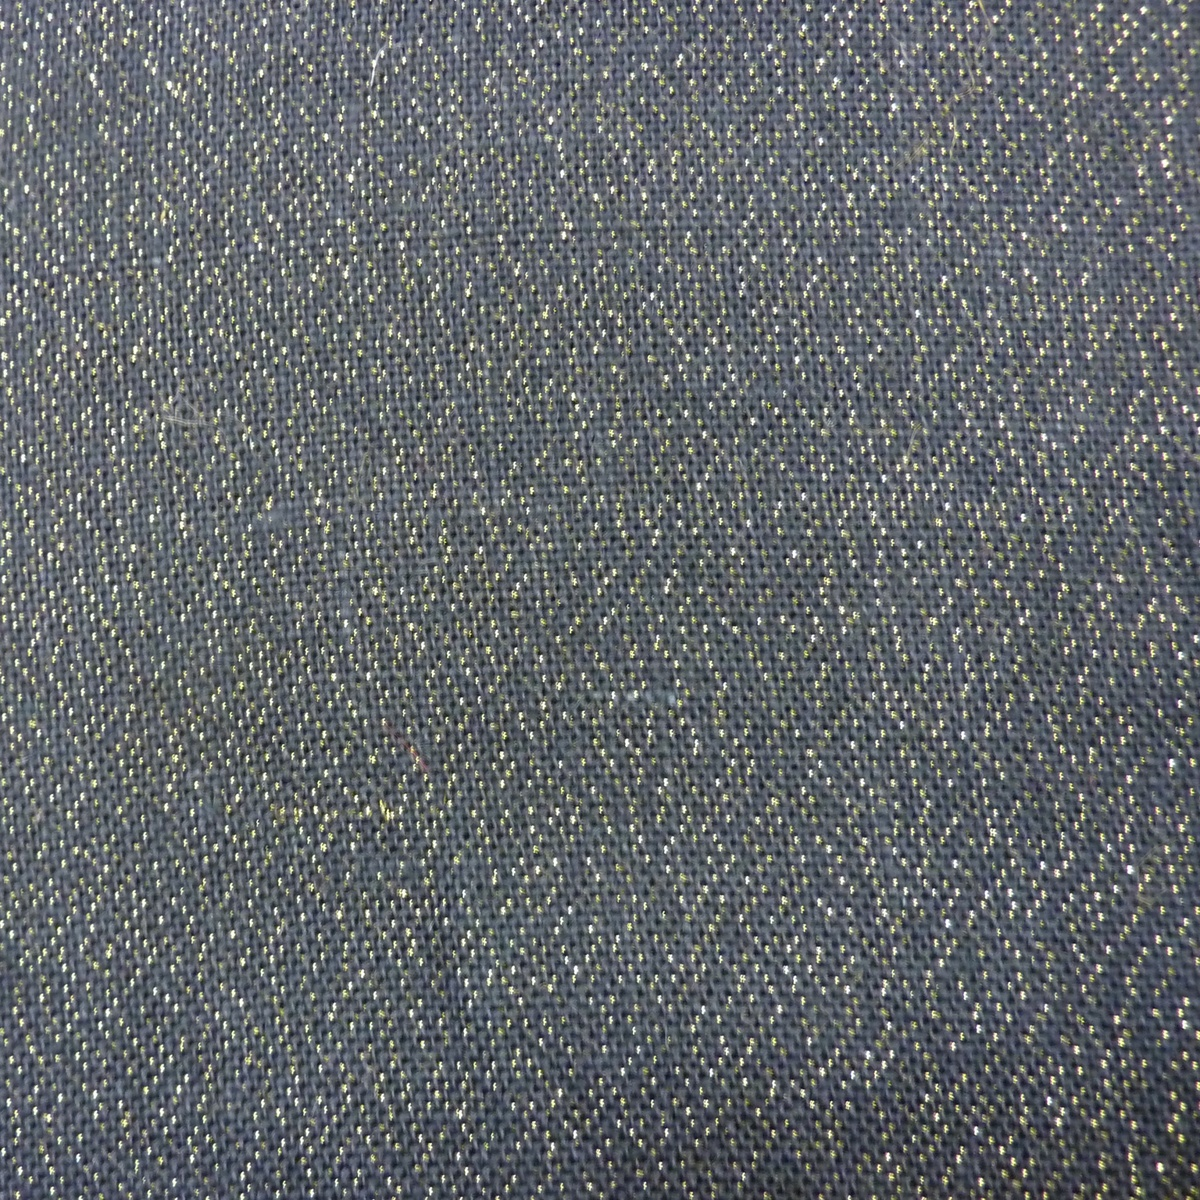 Utility Fabric-Burlap Black Metallic